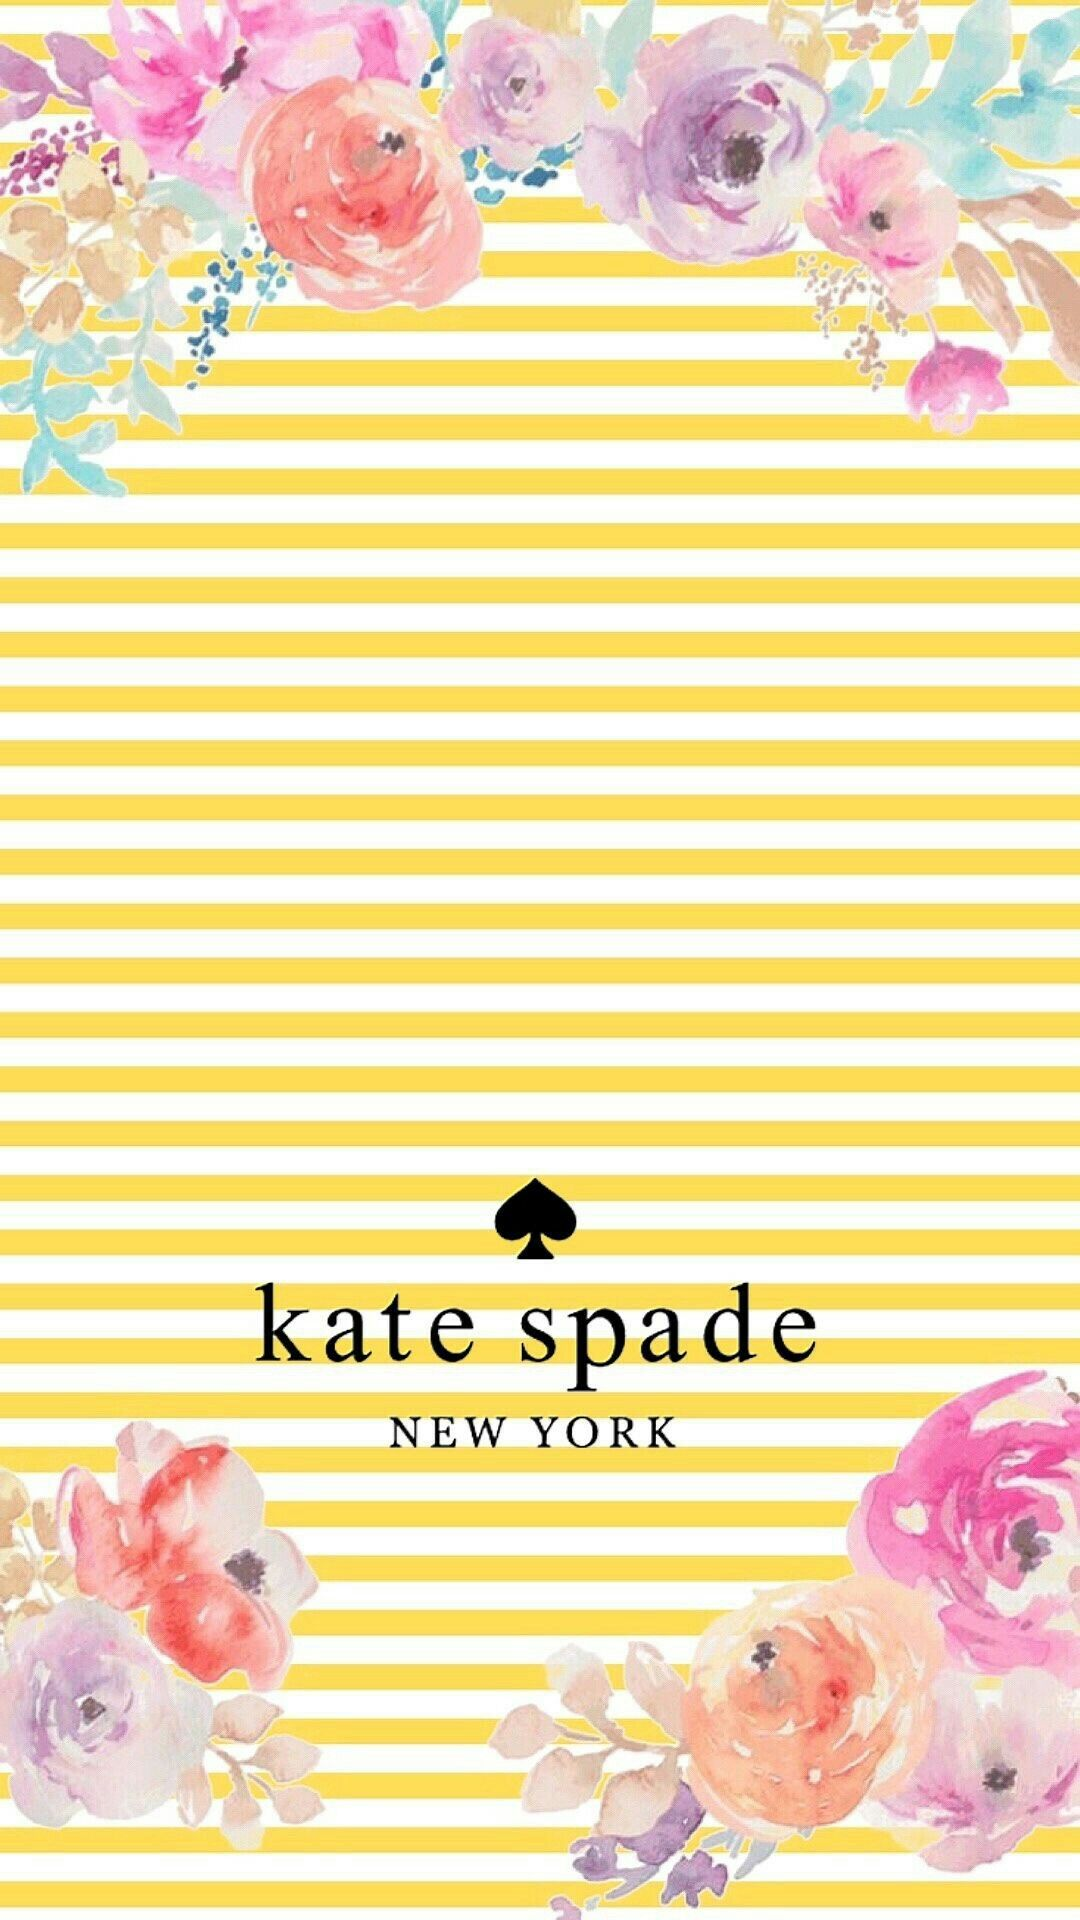 Wallpaper iphone kate spade - Icandy Iphone Backgroundswallpaper